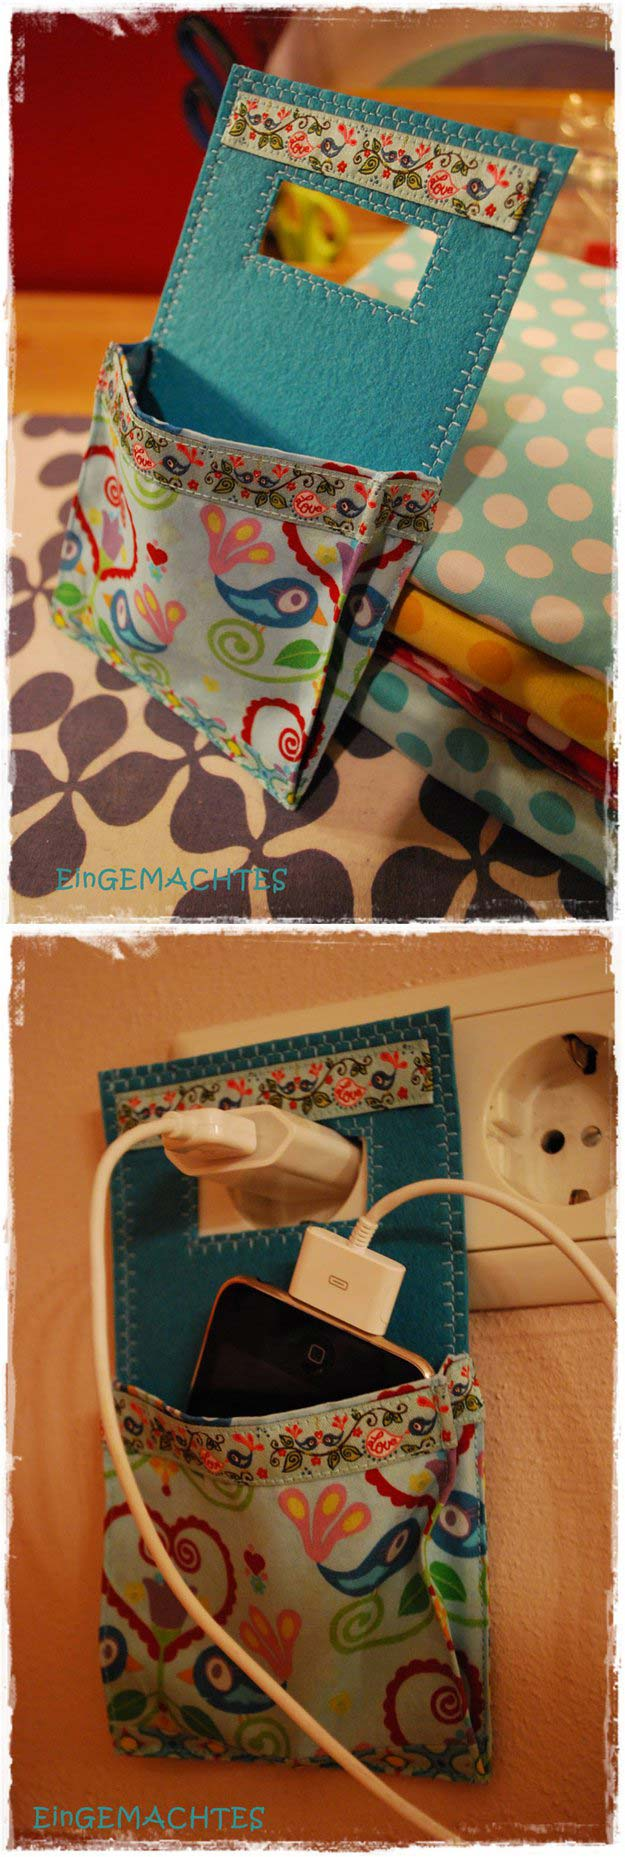 Crafts to Make and Sell - Cute Charging Station - Easy Step by Step Tutorials for Fun, Cool and Creative Ways for Teenagers to Make Money Selling Stuff - Room Decor, Accessories, Gifts and More http://diyprojectsforteens.com/diy-crafts-to-make-and-sell